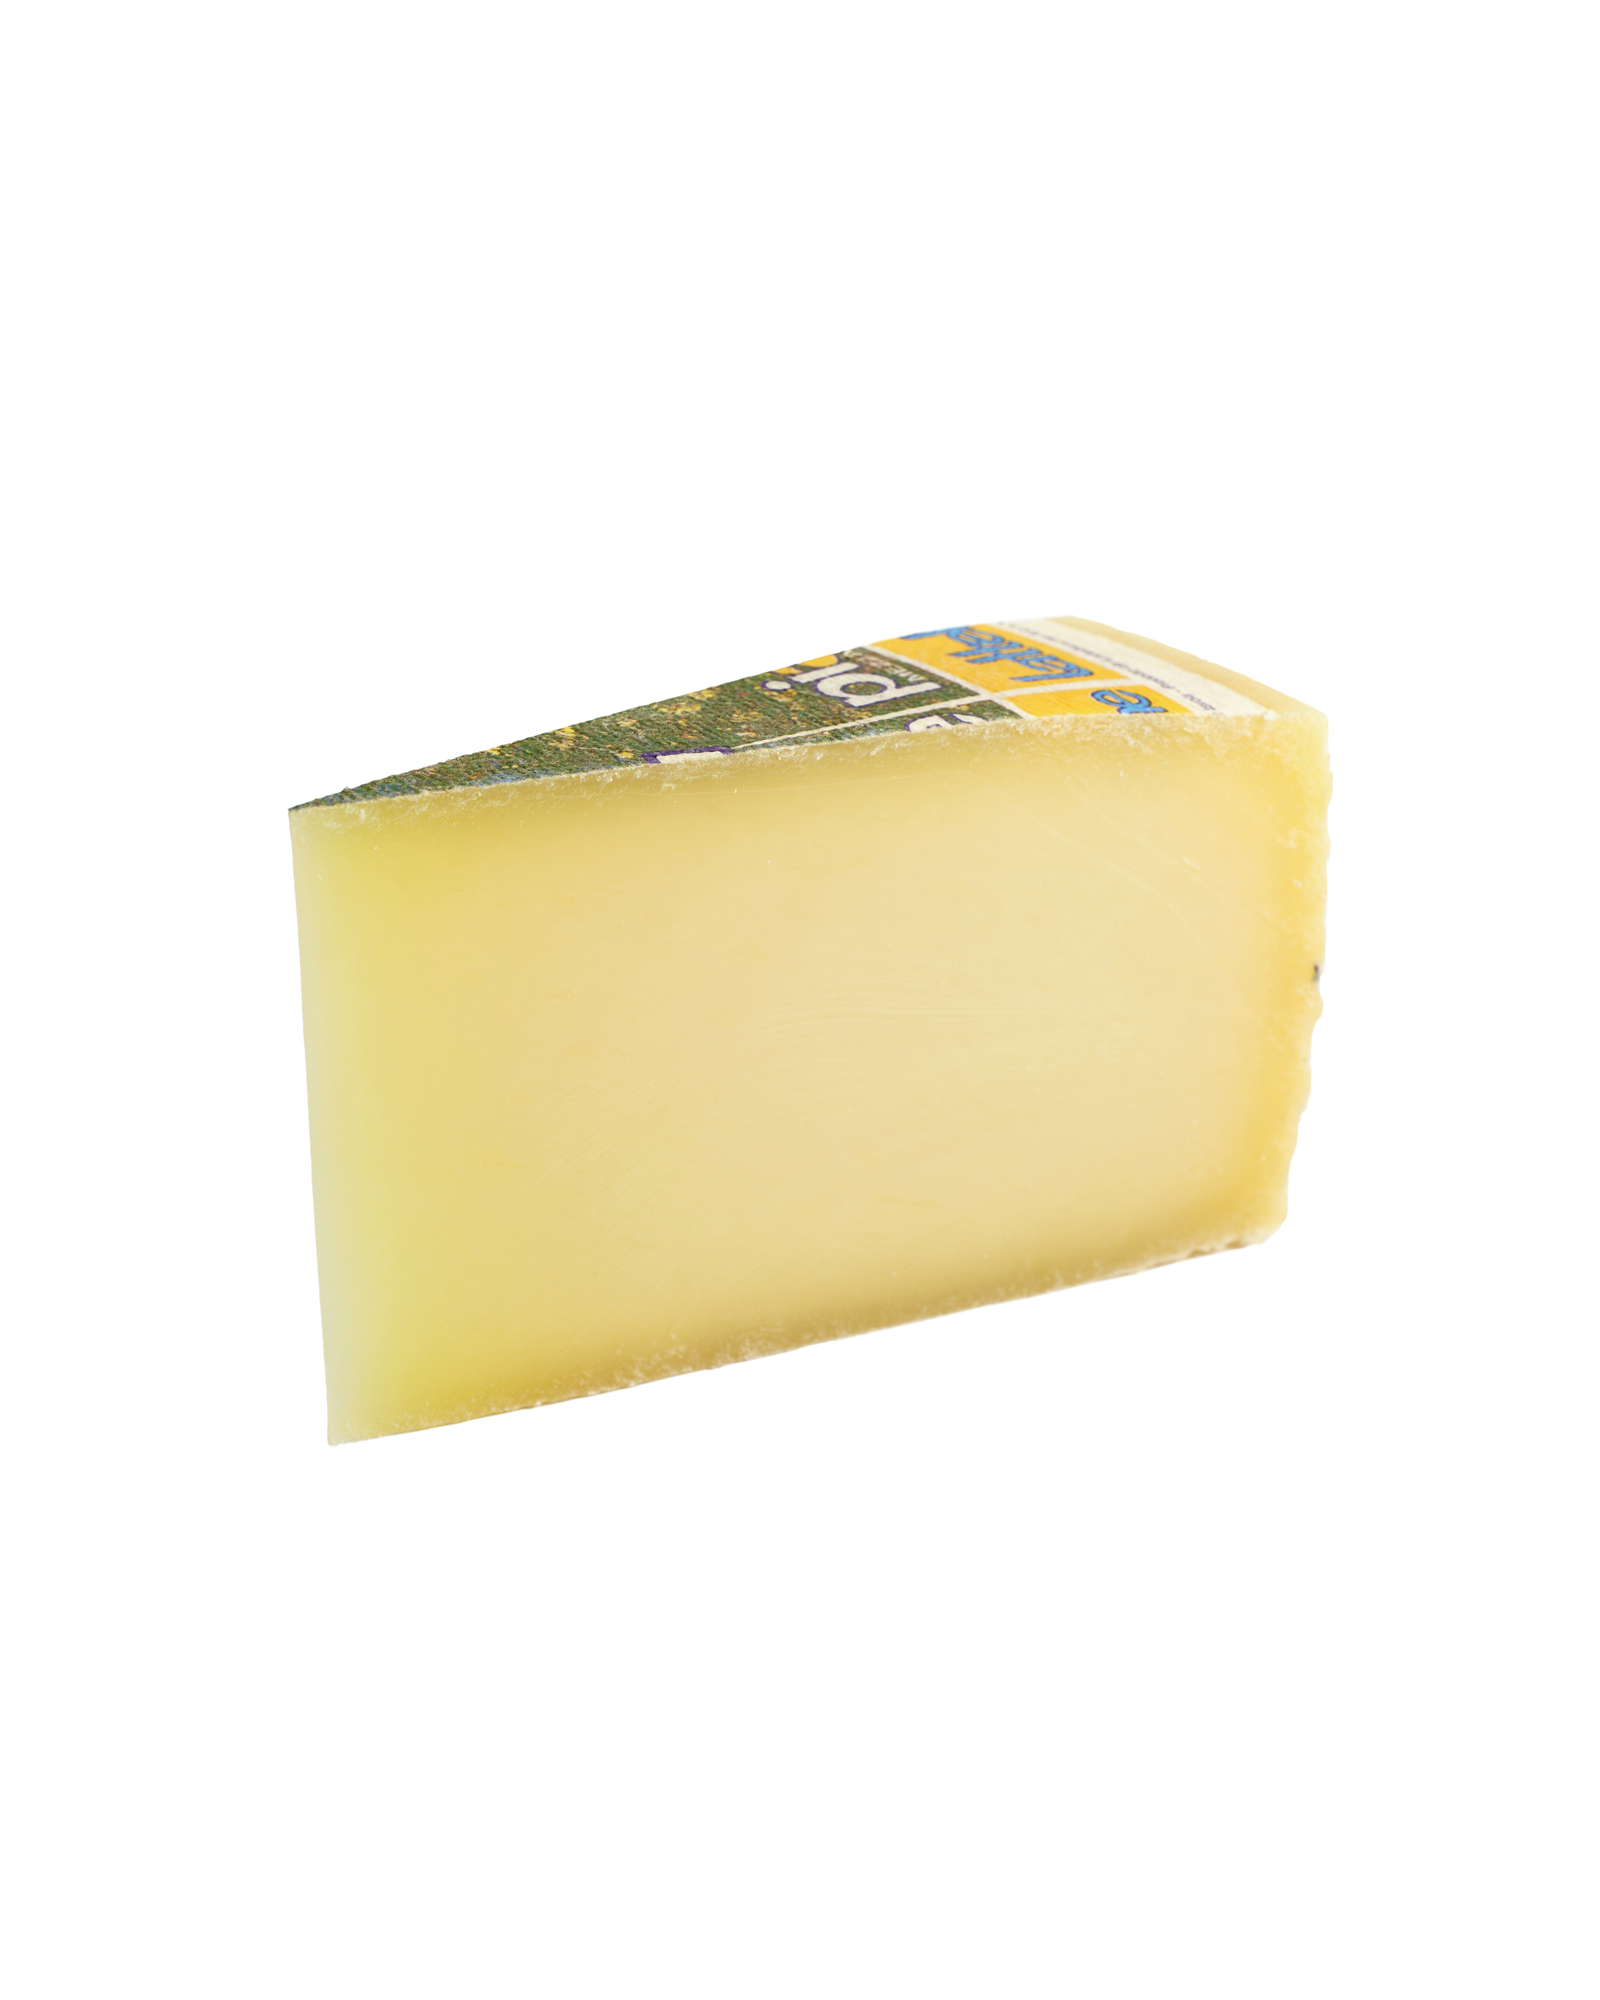 Cantal Cheese Whole Foods